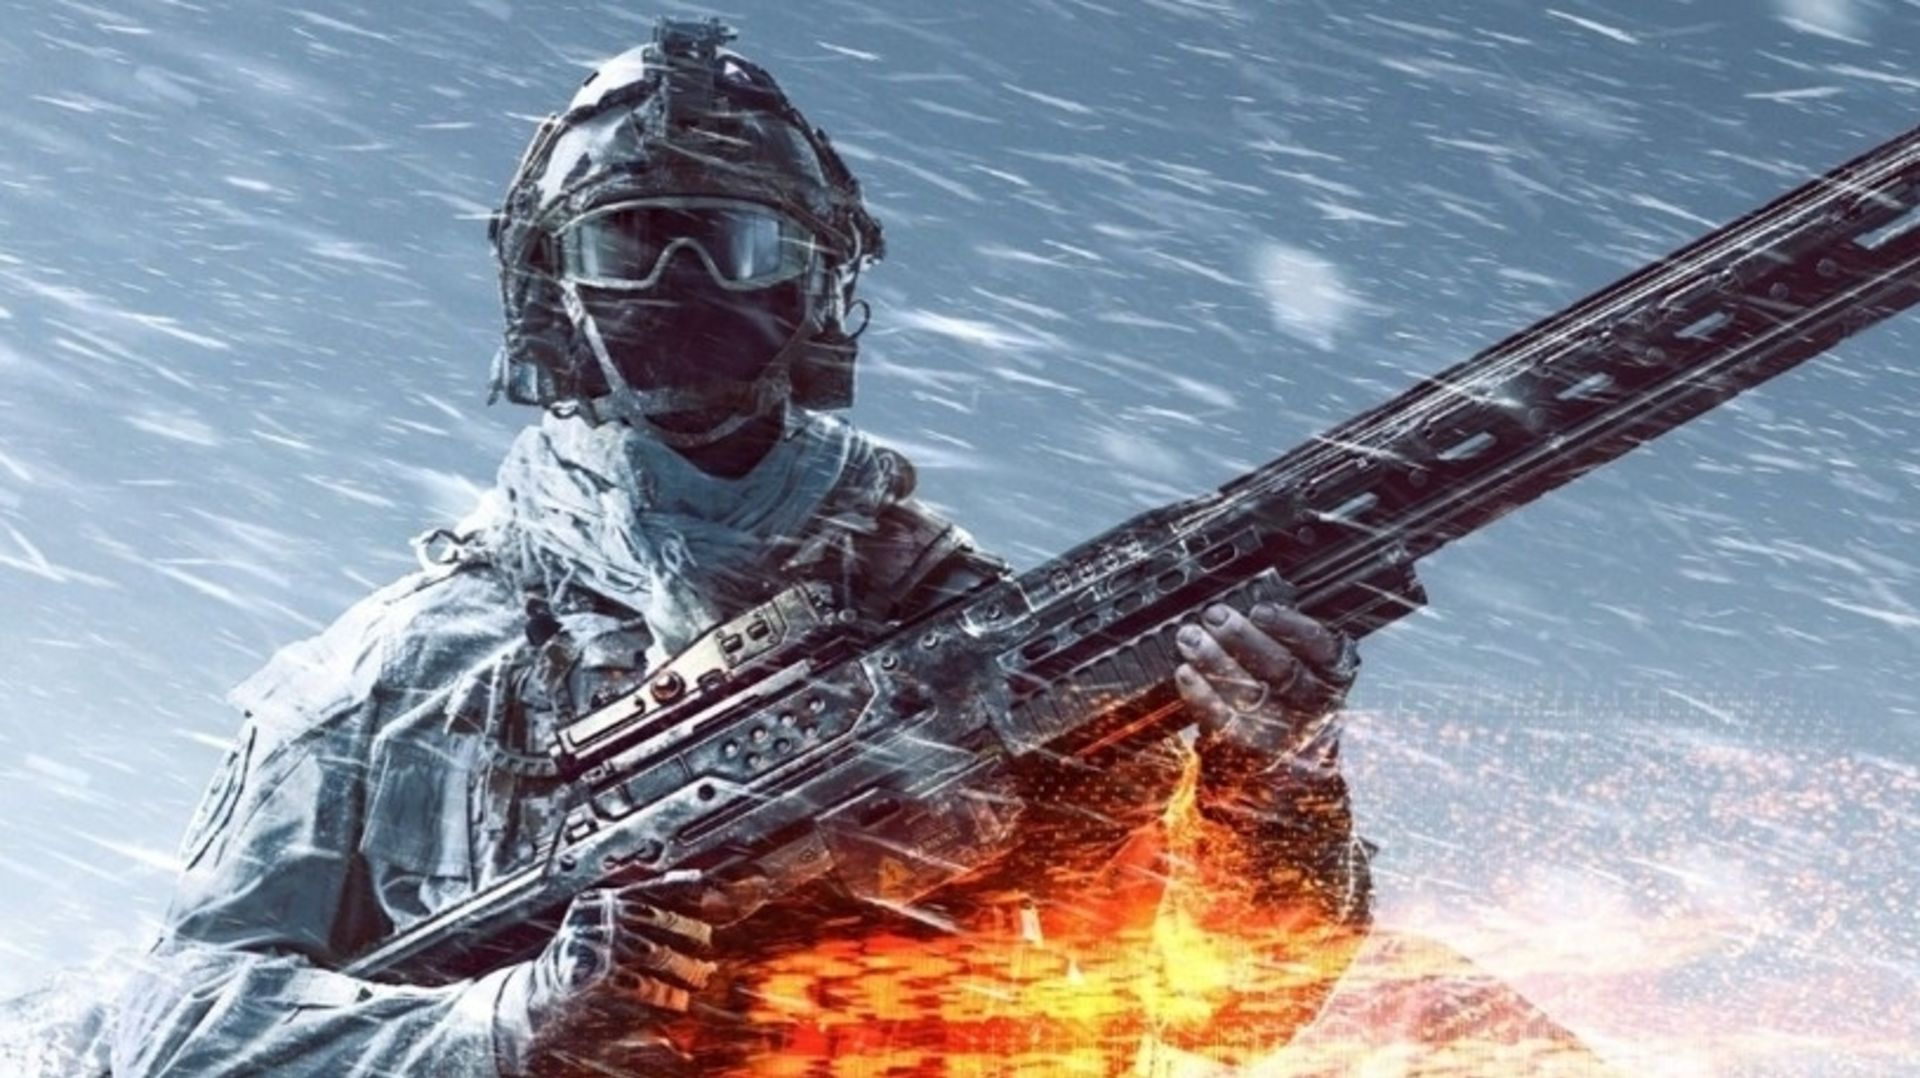 Battlefield 2042: the official announcement has arrived